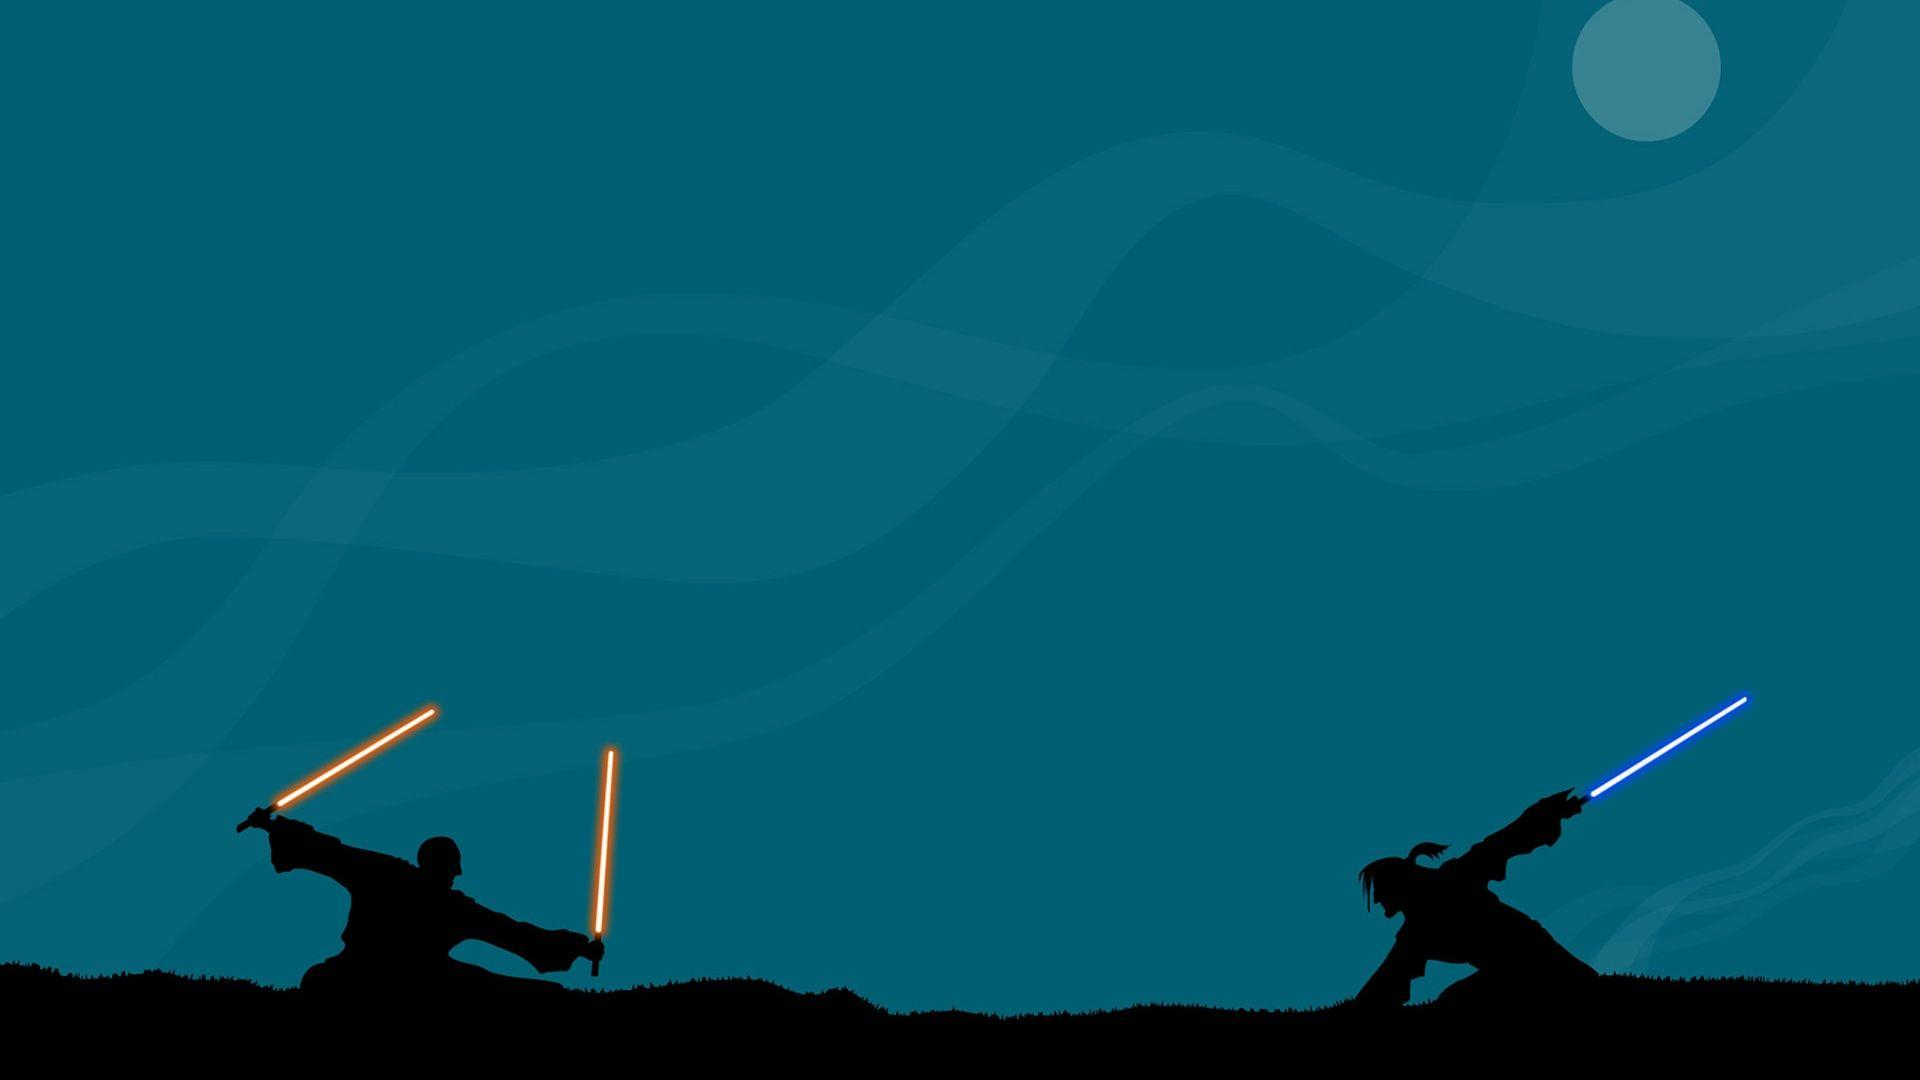 Star wars vector wallpapers paper wallpapers 1920x1080 px